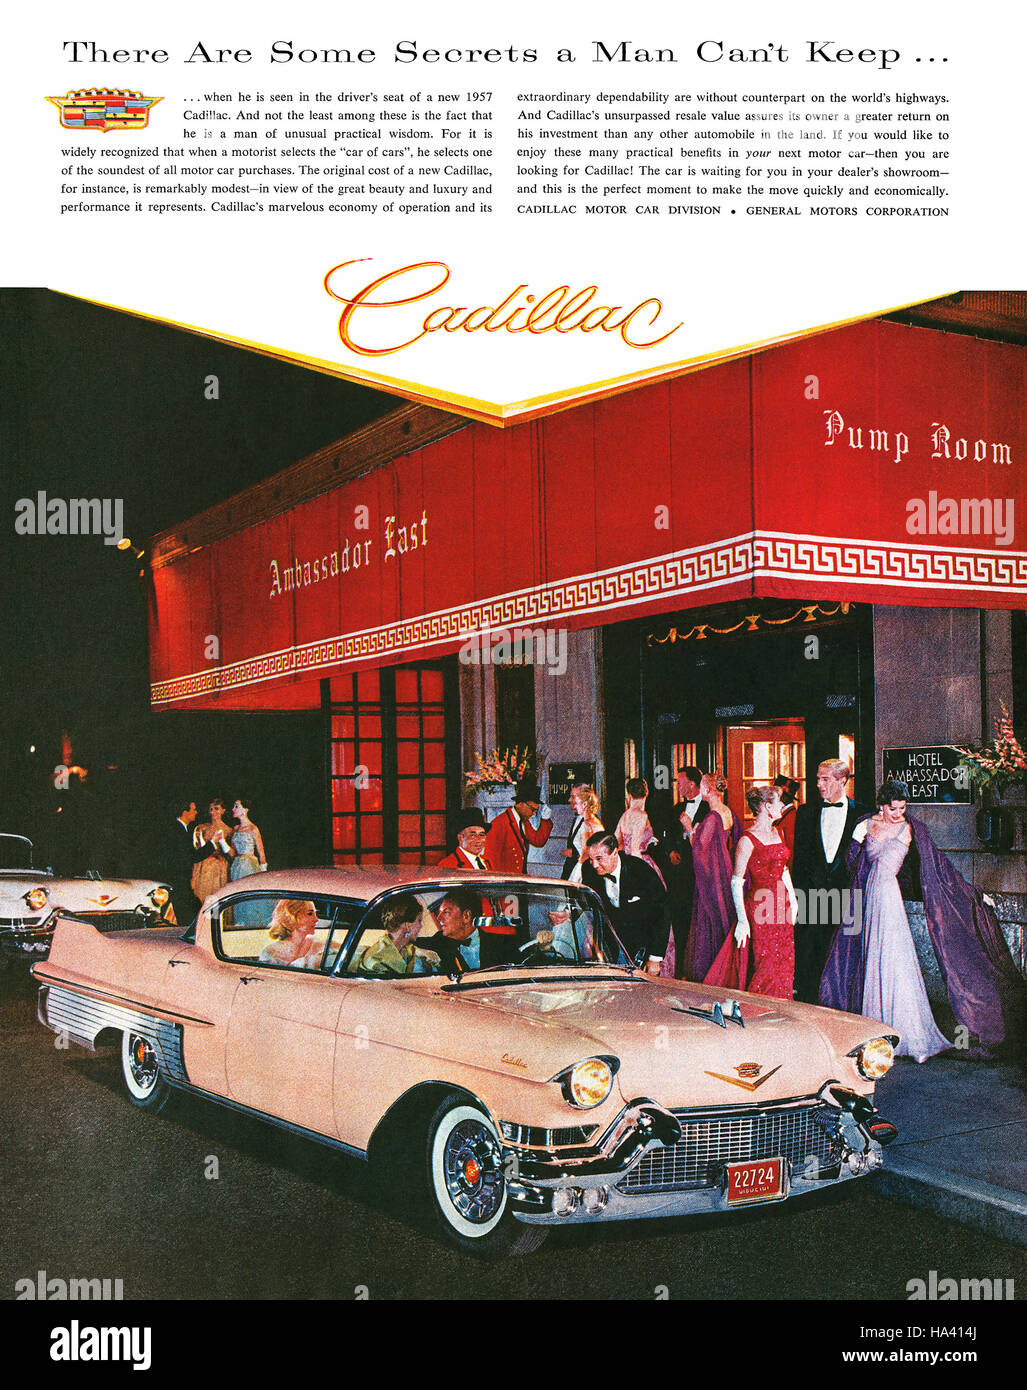 1957 U.S. advertisement for Cadillac - Stock Image